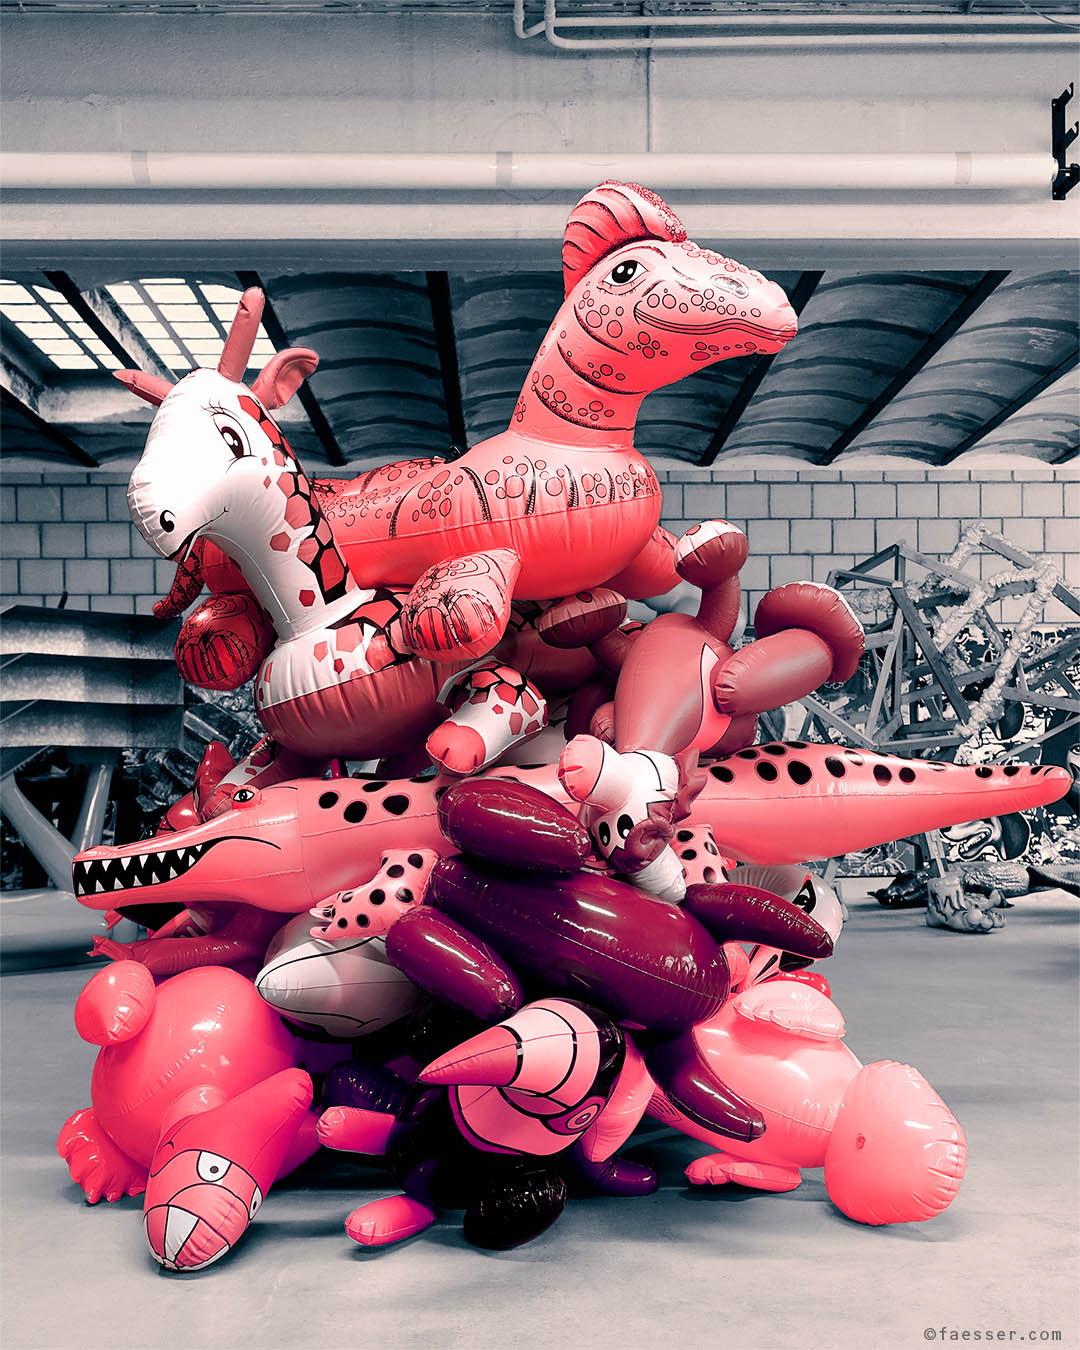 Inflated animals piled on top of each other; work of art as figurative sculpture; artist Roland Faesser, sculptor and painter 2019